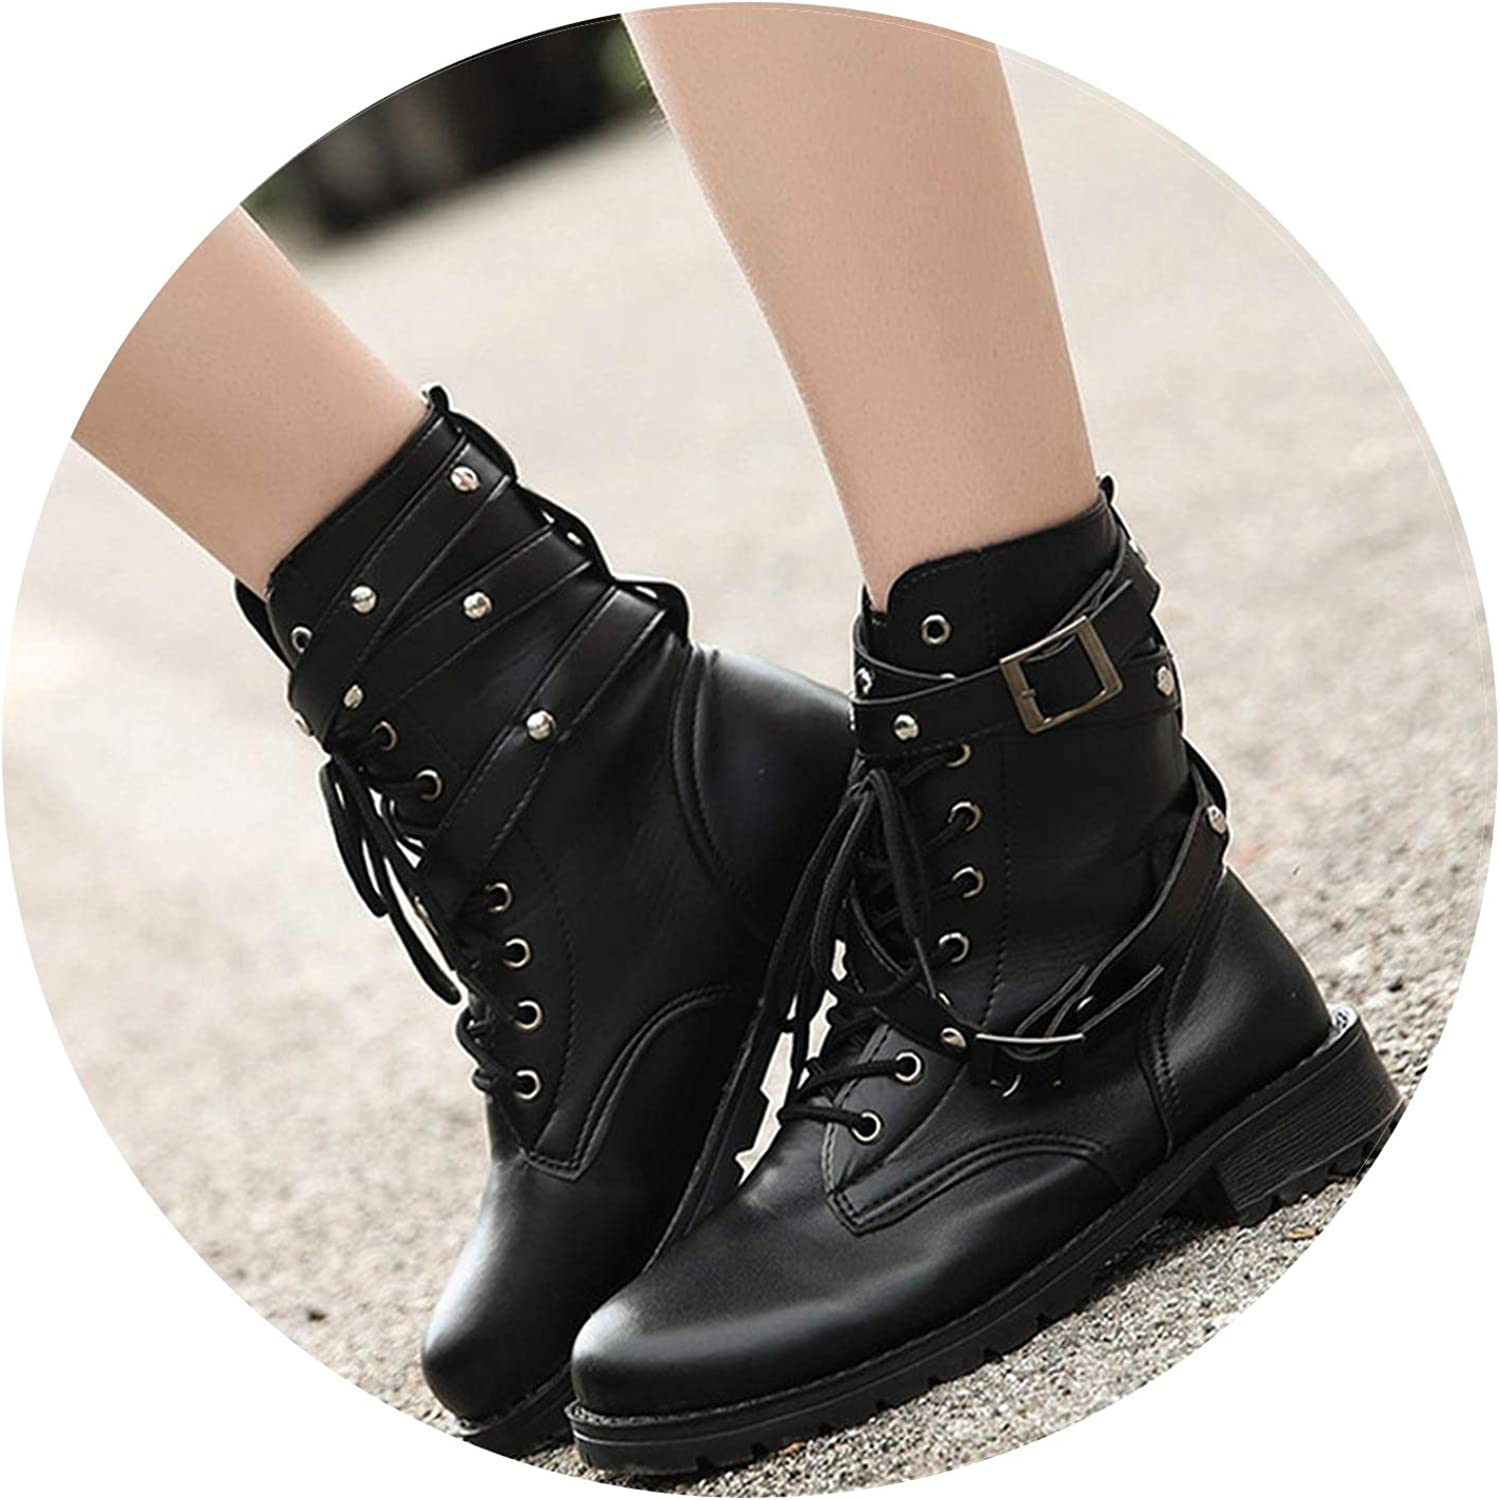 The fairy Women Lace Up Martin Boots Round Toe Pu Leather Boots shoes Ladies Combat Military Ankle Motorcycle Boots